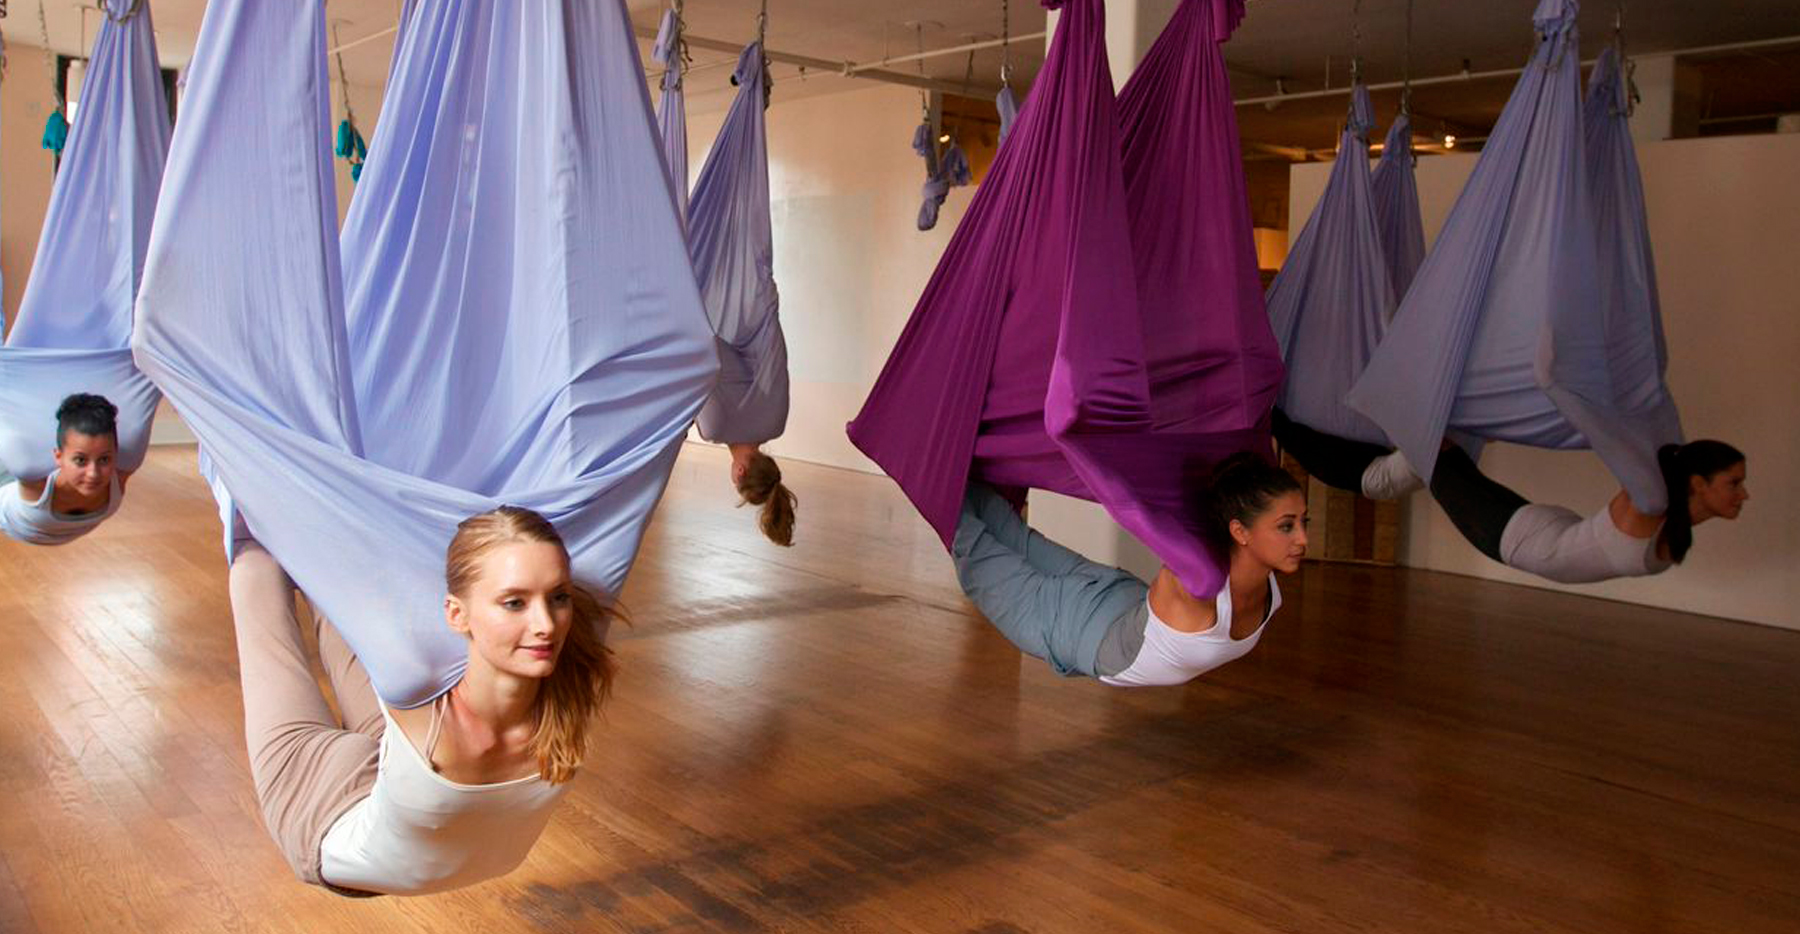 The 21 Most Innovative Gyms in the U.S